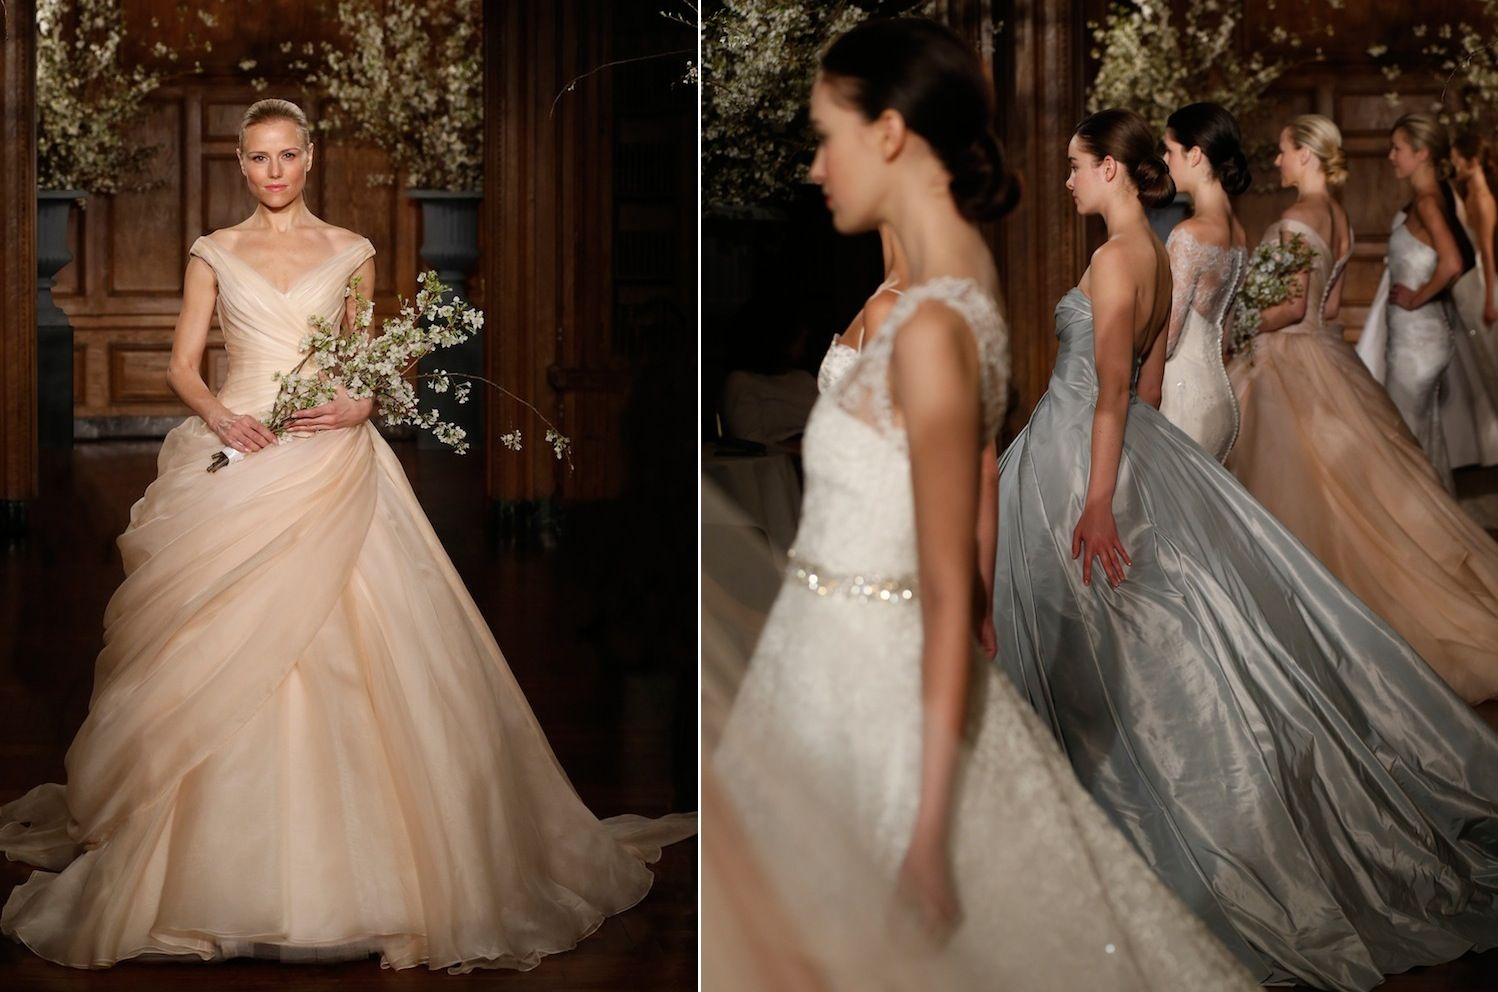 Wedding Dresses With Color Summertime Weddings 21 Chic Looks For Bridesmaids